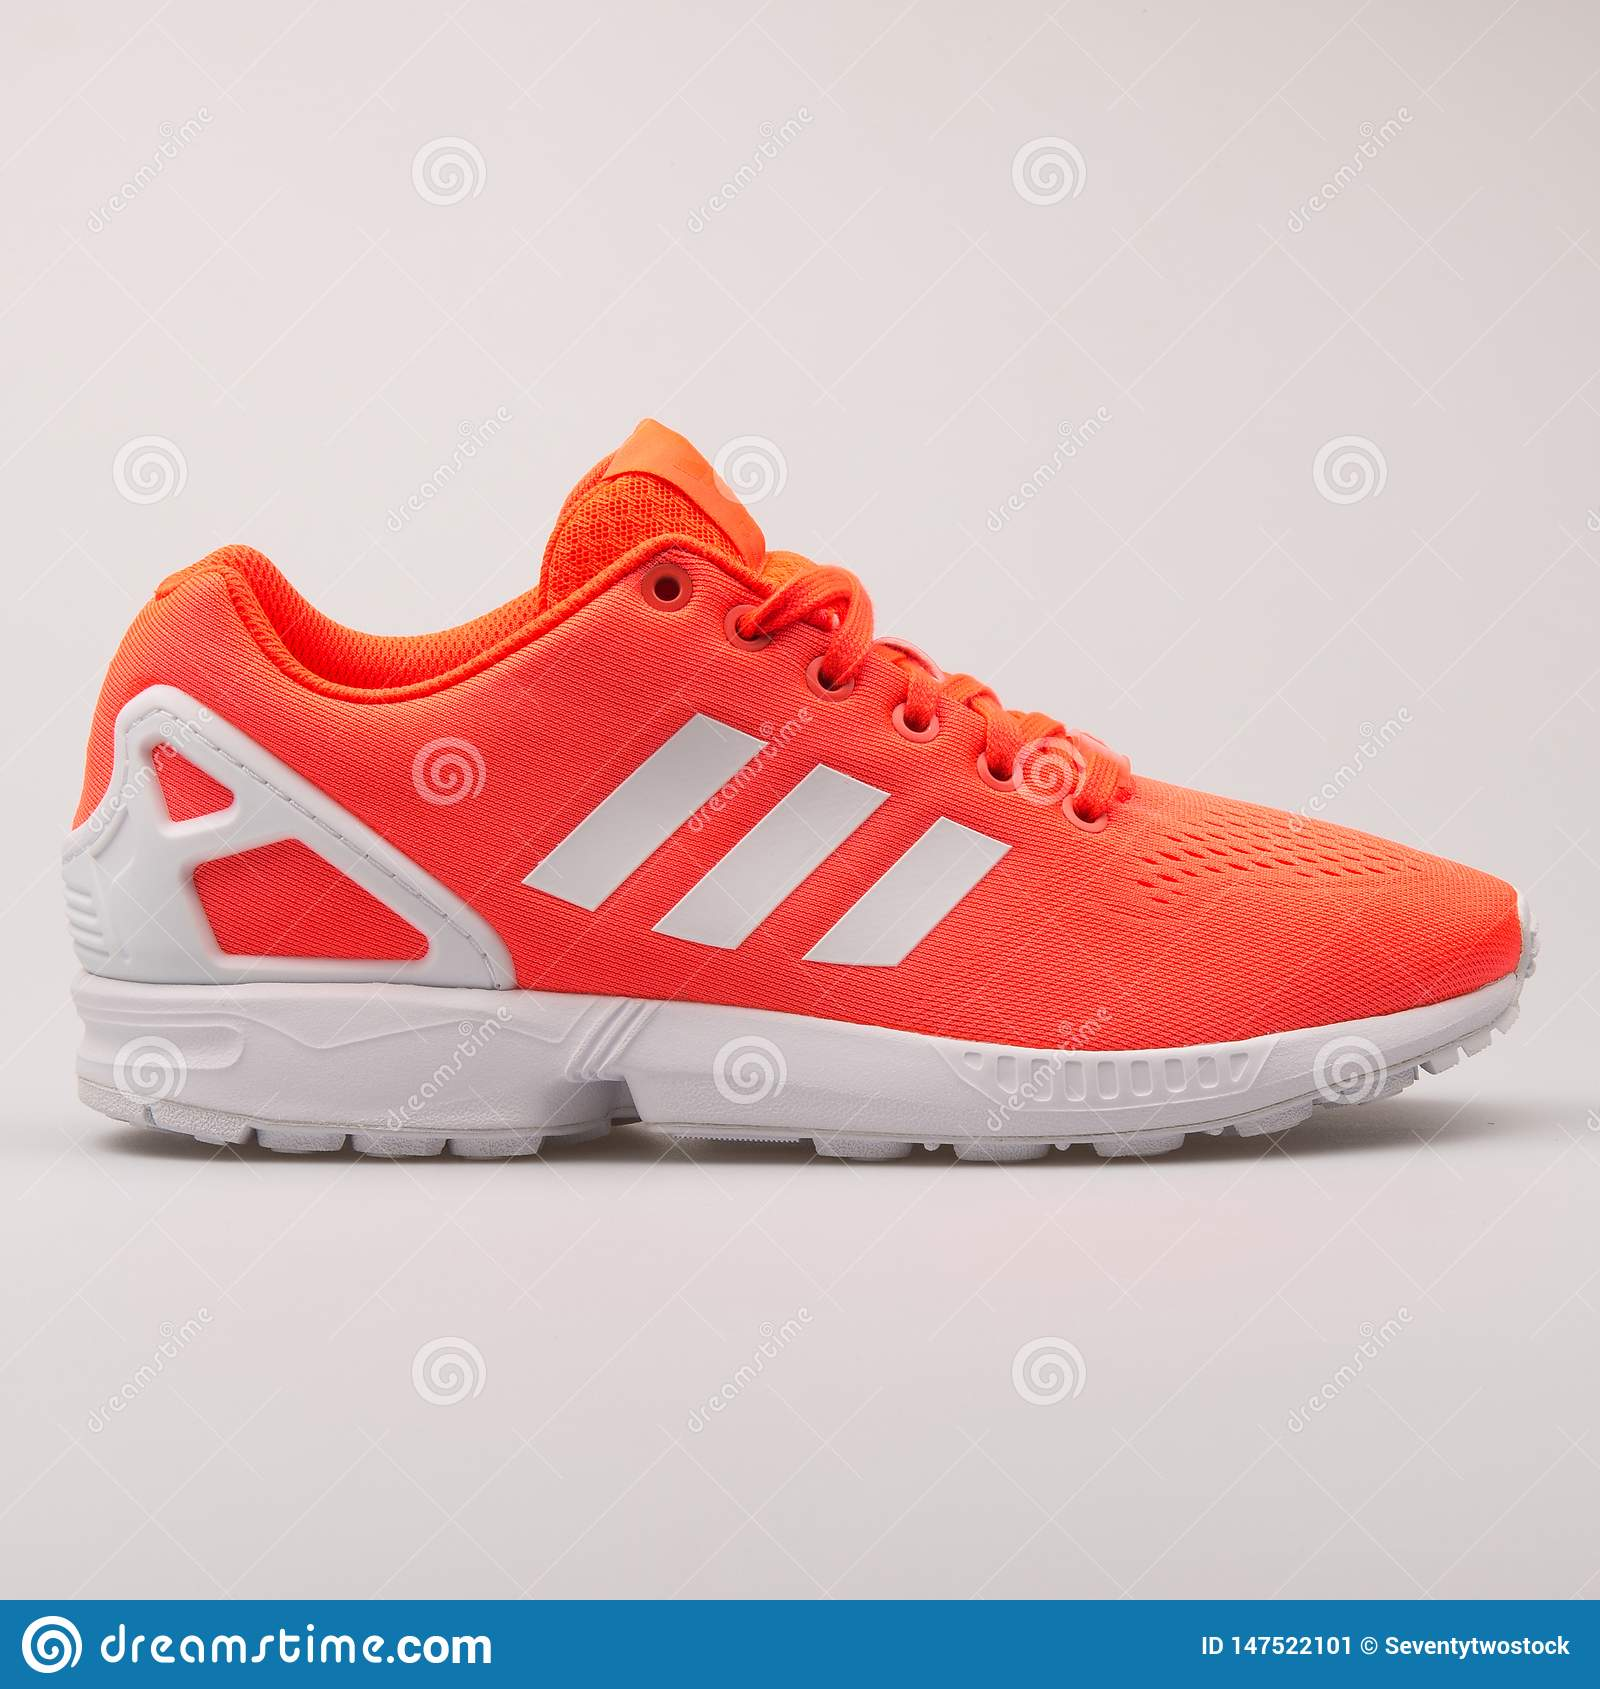 Adidas ZX Flux EM Red And White Sneaker Editorial Photo - Image of ...